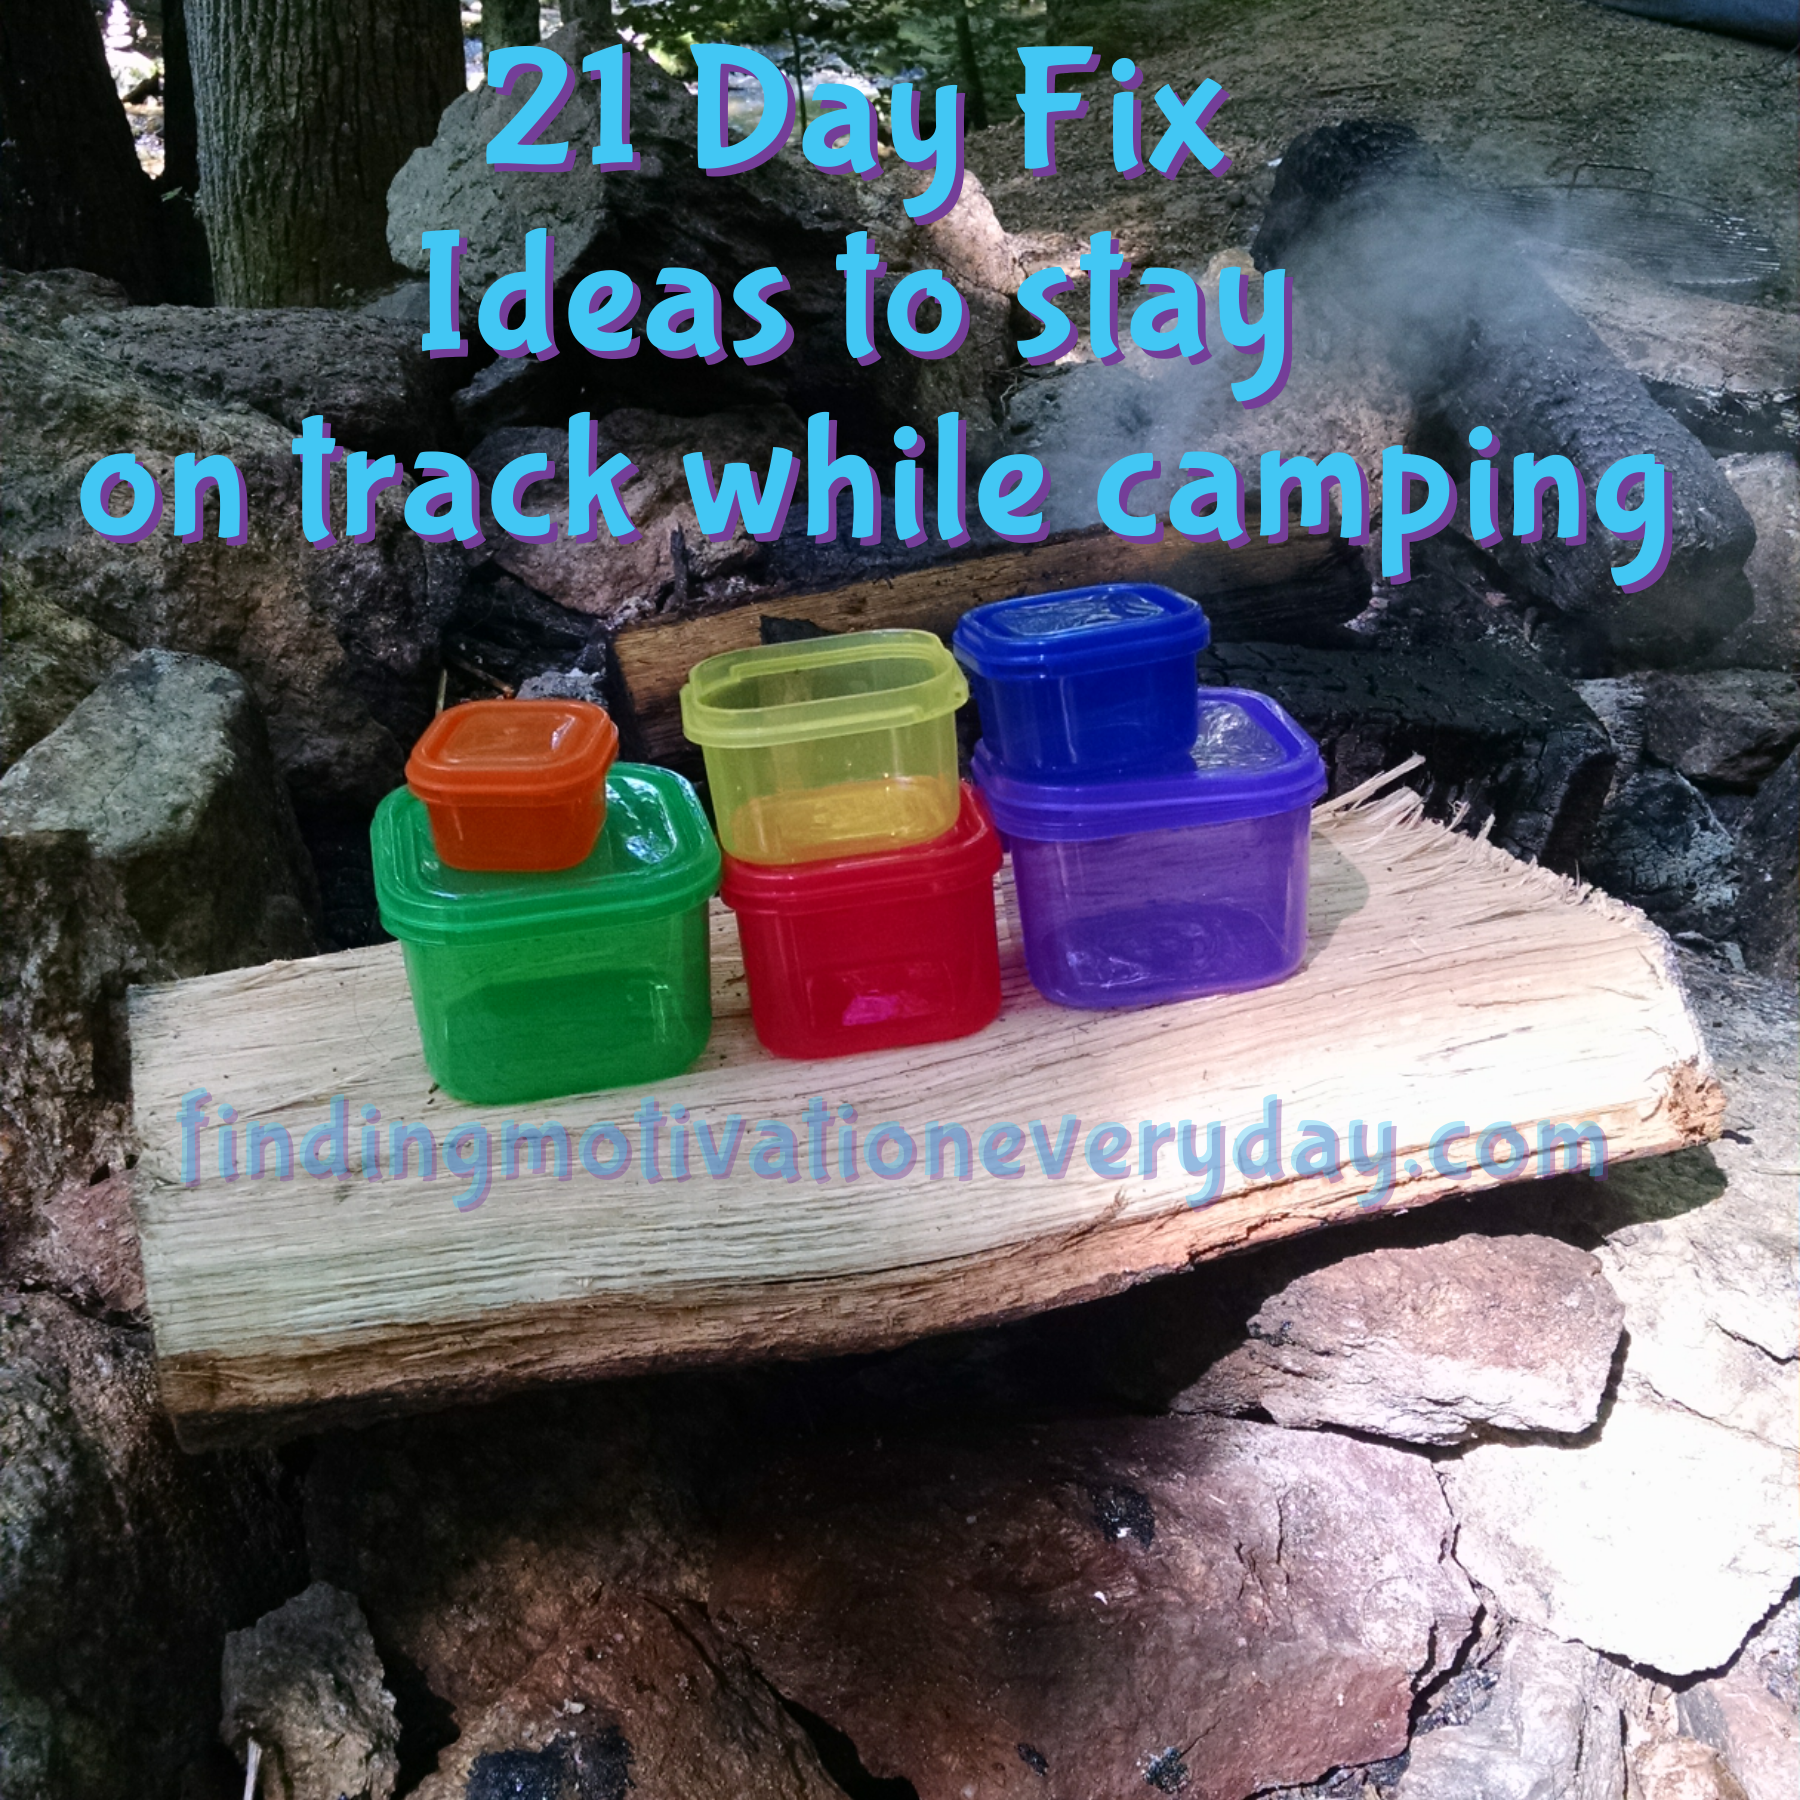 21 Day Fix Approved Camping Ideas 21 Day Fix Camping Tips